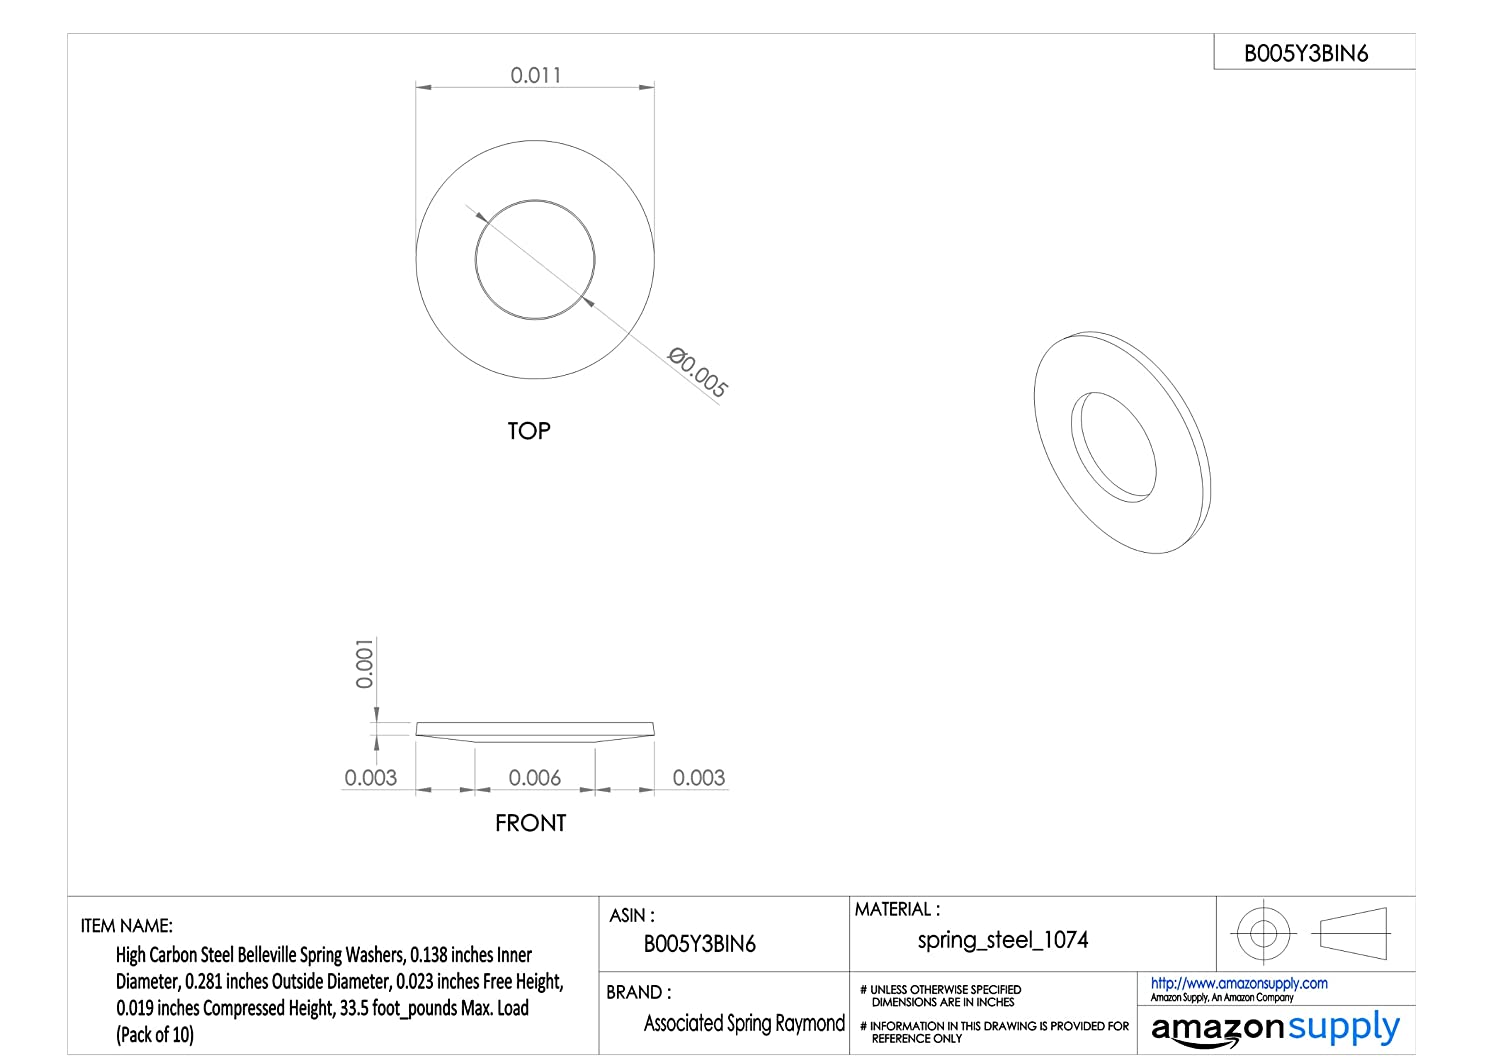 Load 0.027 inches Compressed Height Pack of 10 55 foot/_pounds Max 0.437 inches Outside Diameter 0.138 inches Inner Diameter 0.032 inches Free Height High Carbon Steel Belleville Spring Washers Associated Spring Raymond B0437022